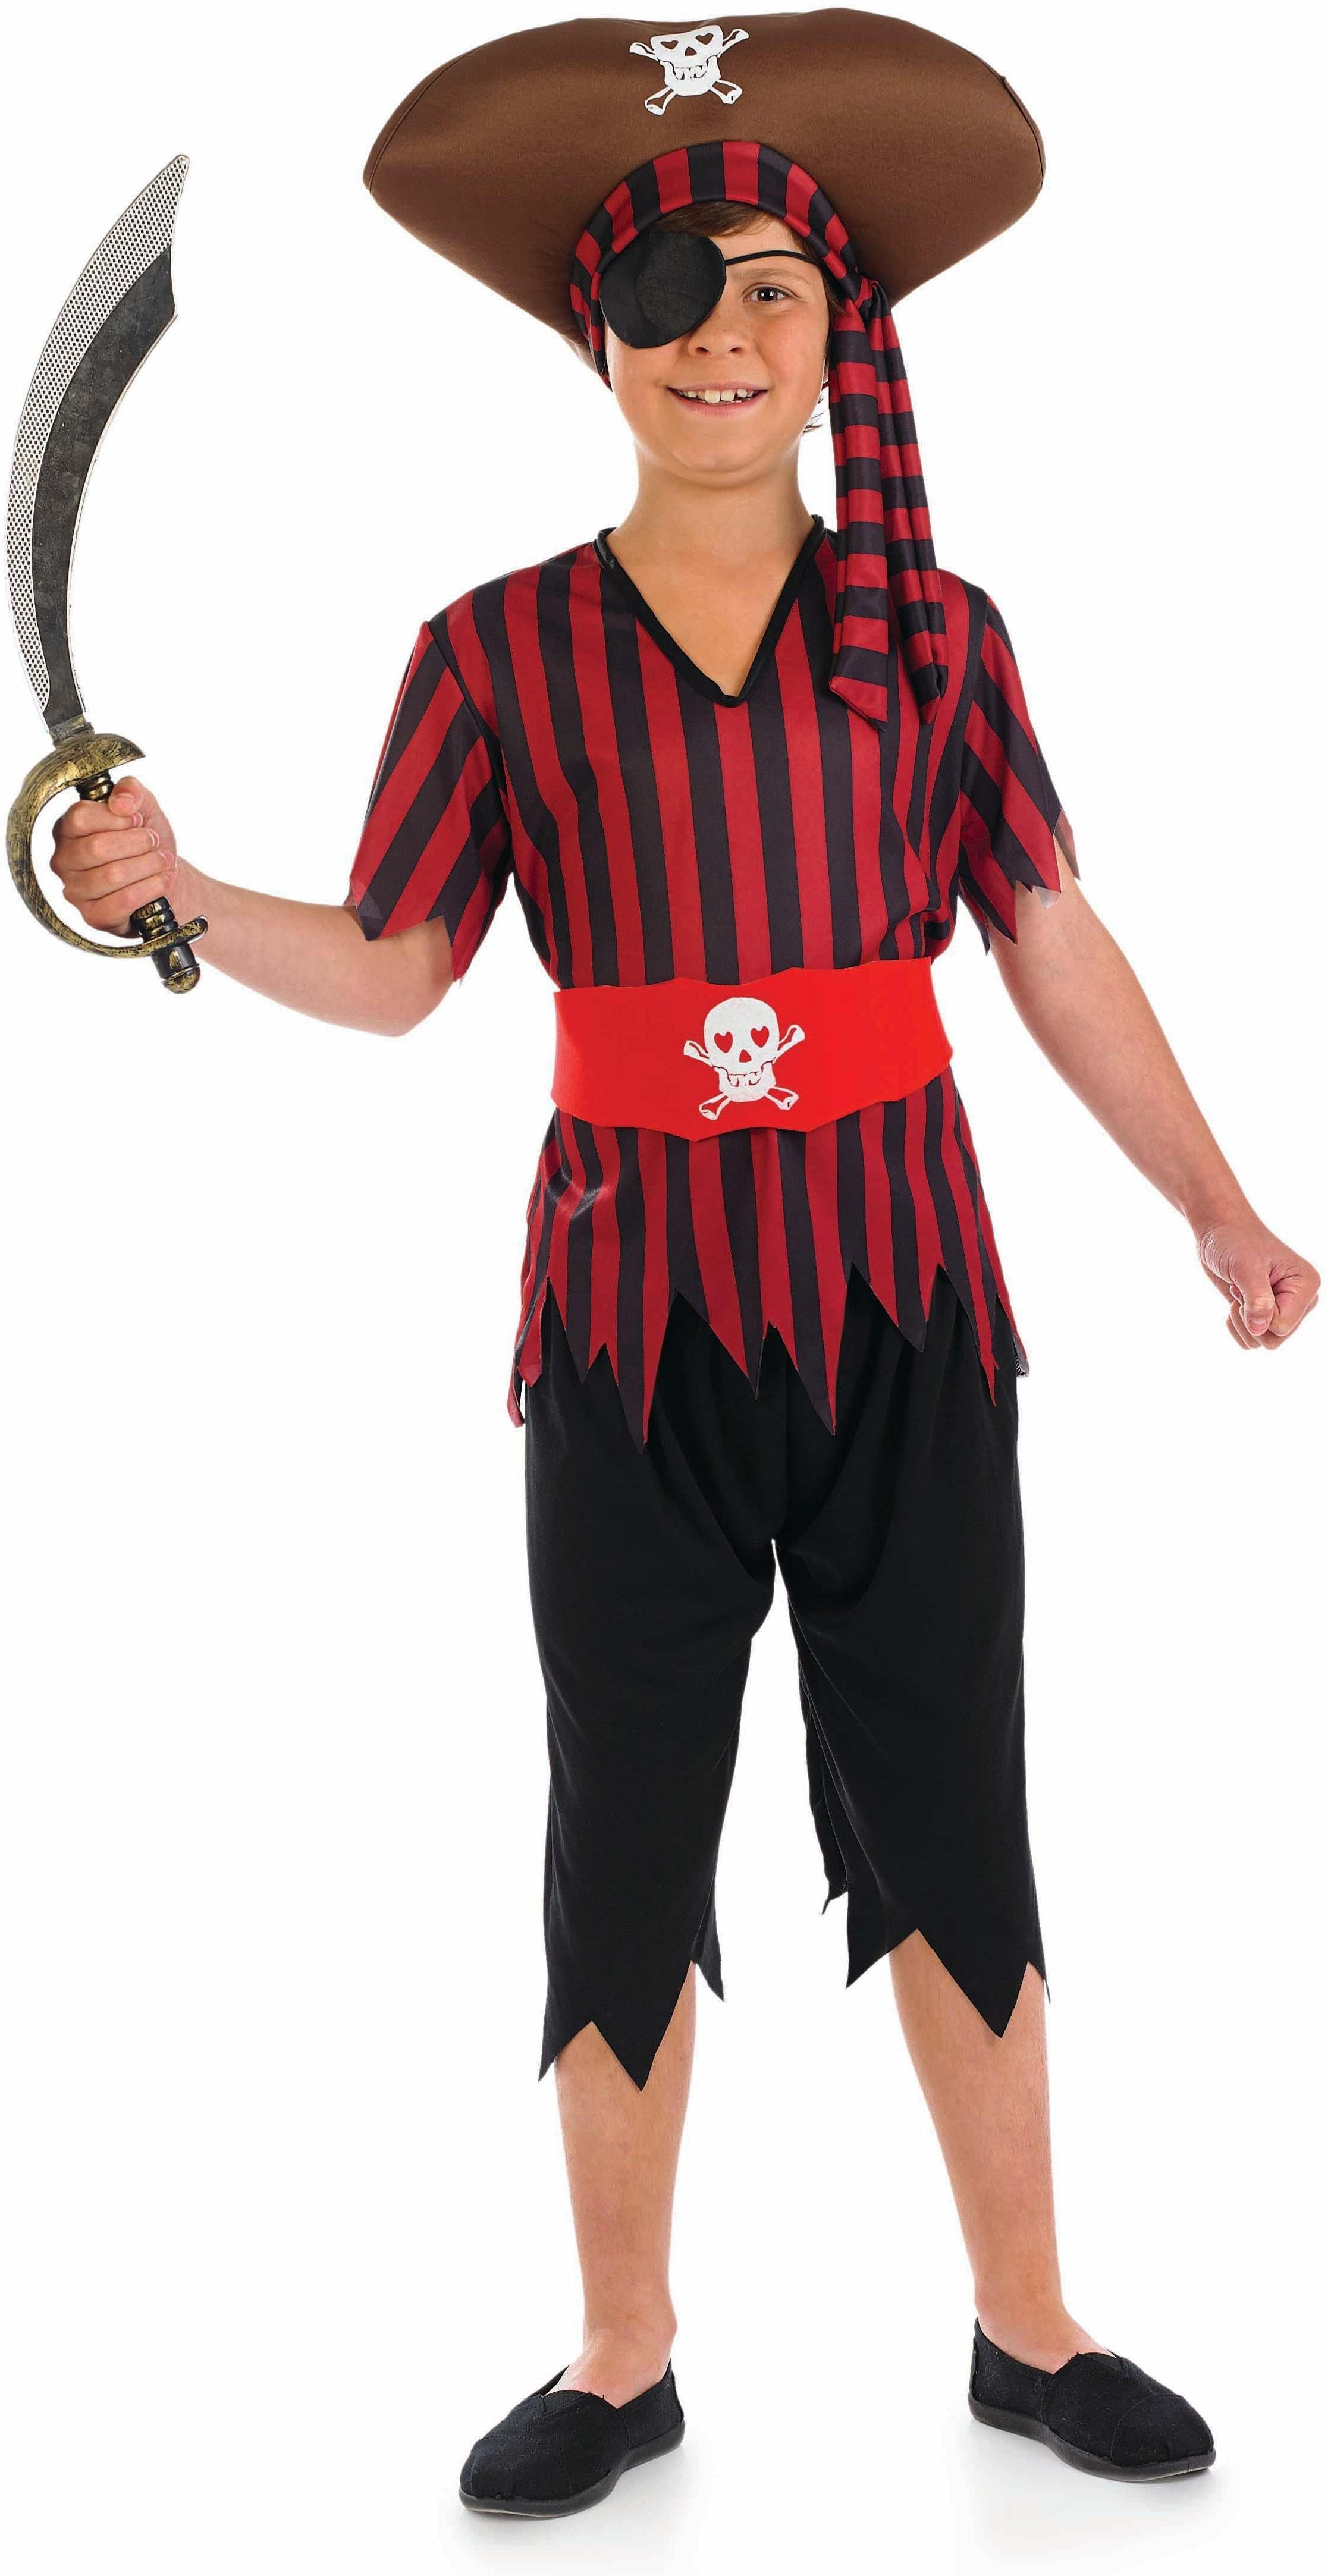 Boys Pirate Pirates Outfit - (Black, Red)